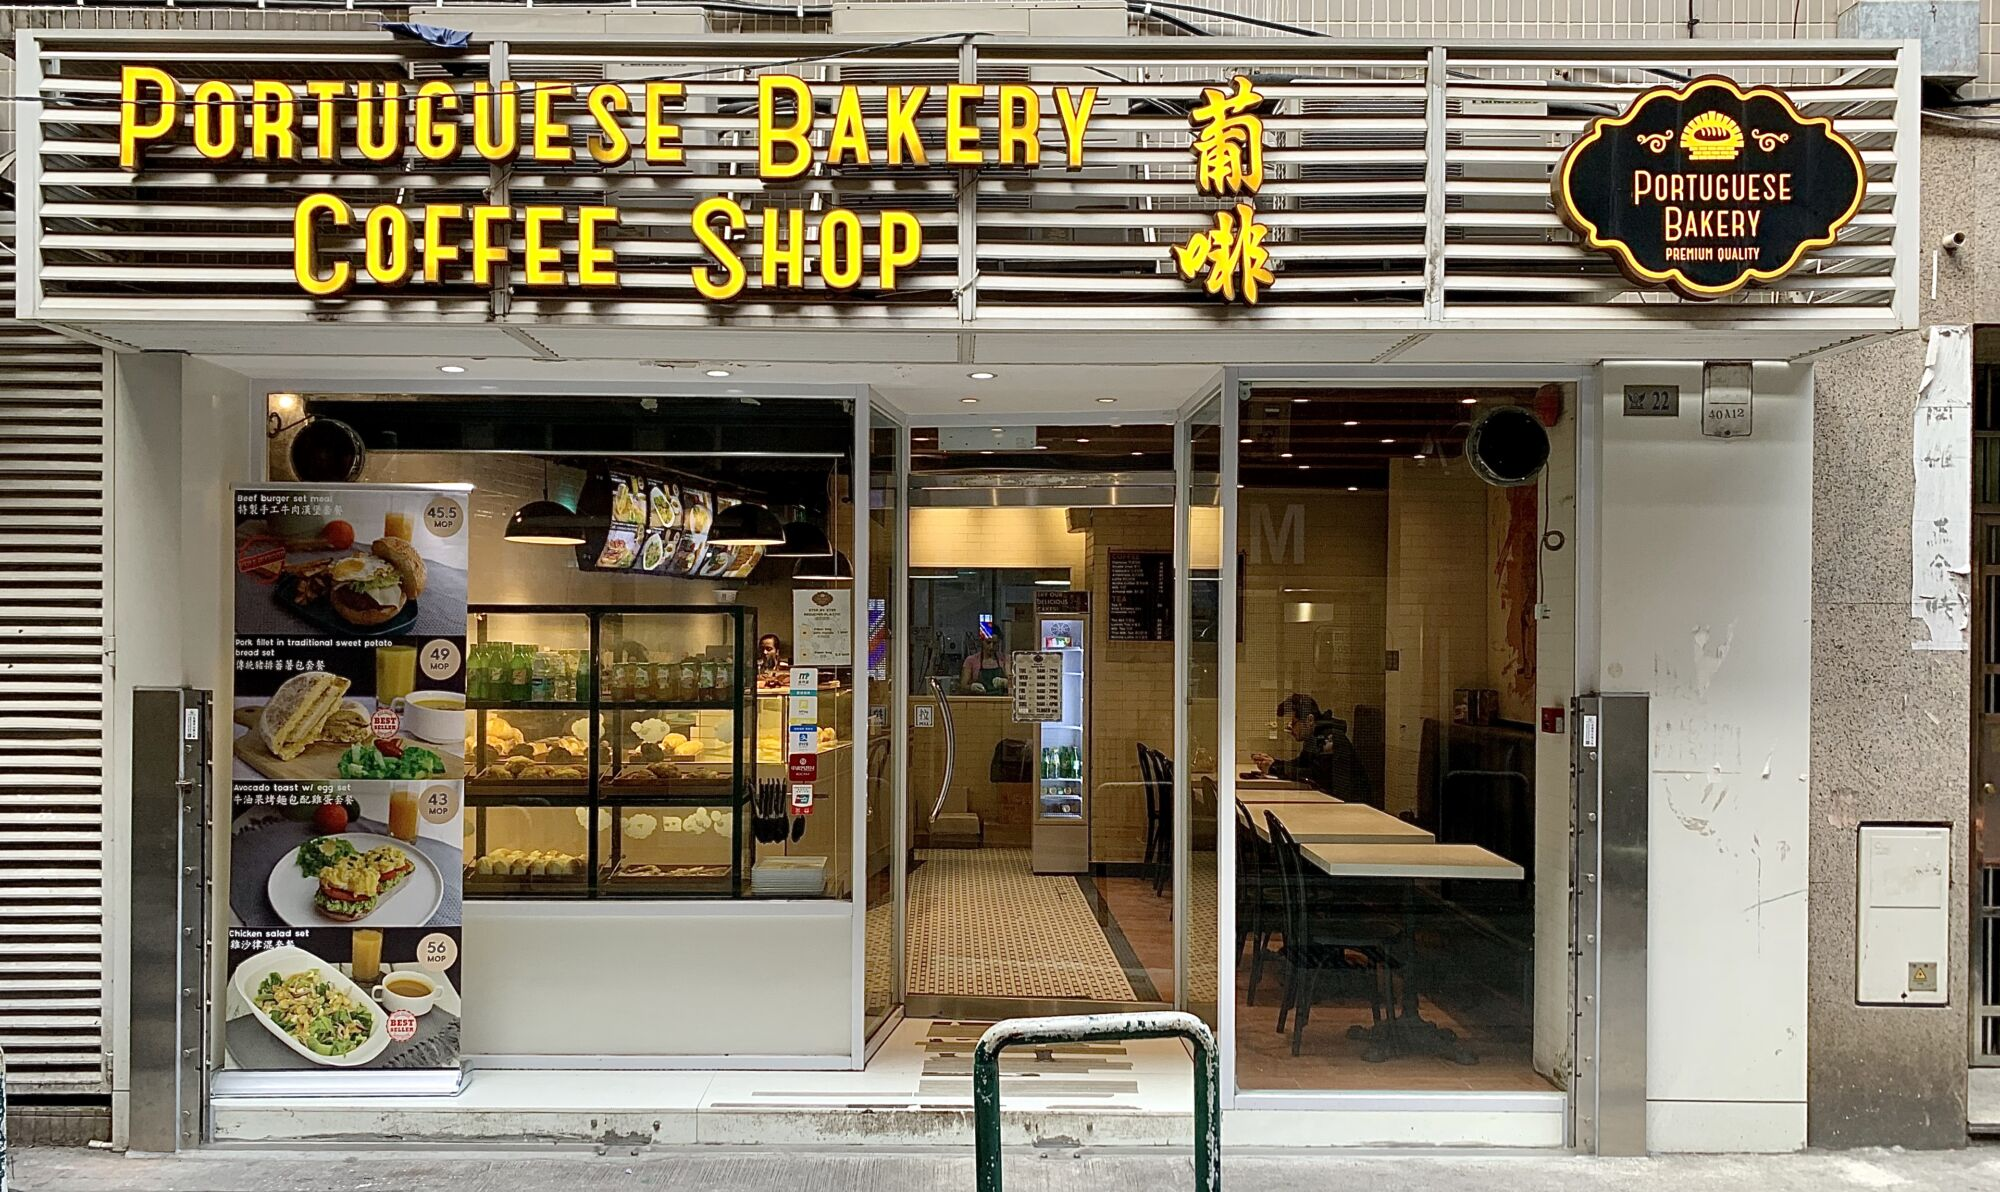 Portuguese Bakery Coffee Shop Macau Front Door Macau Lifestyle barra